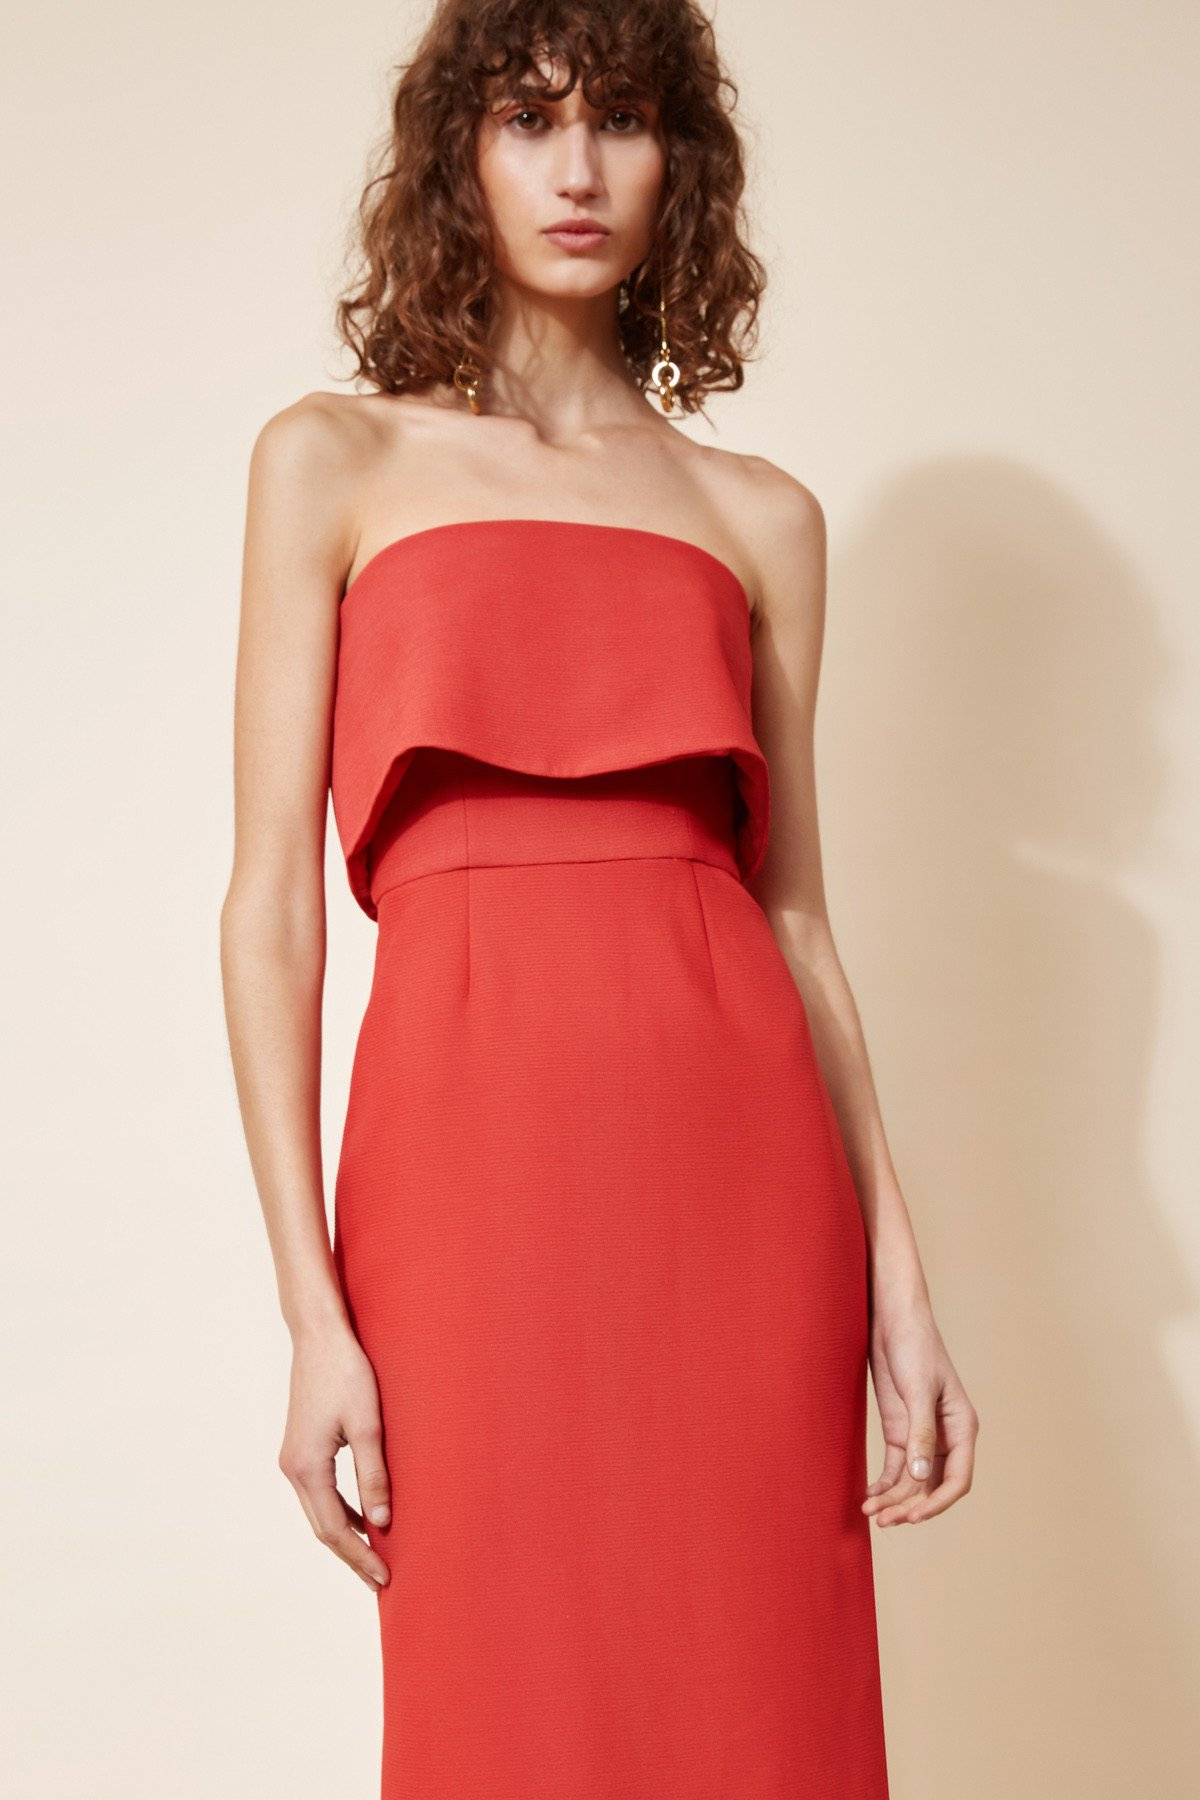 Shop C/MEO Infinite Strapless Dress.